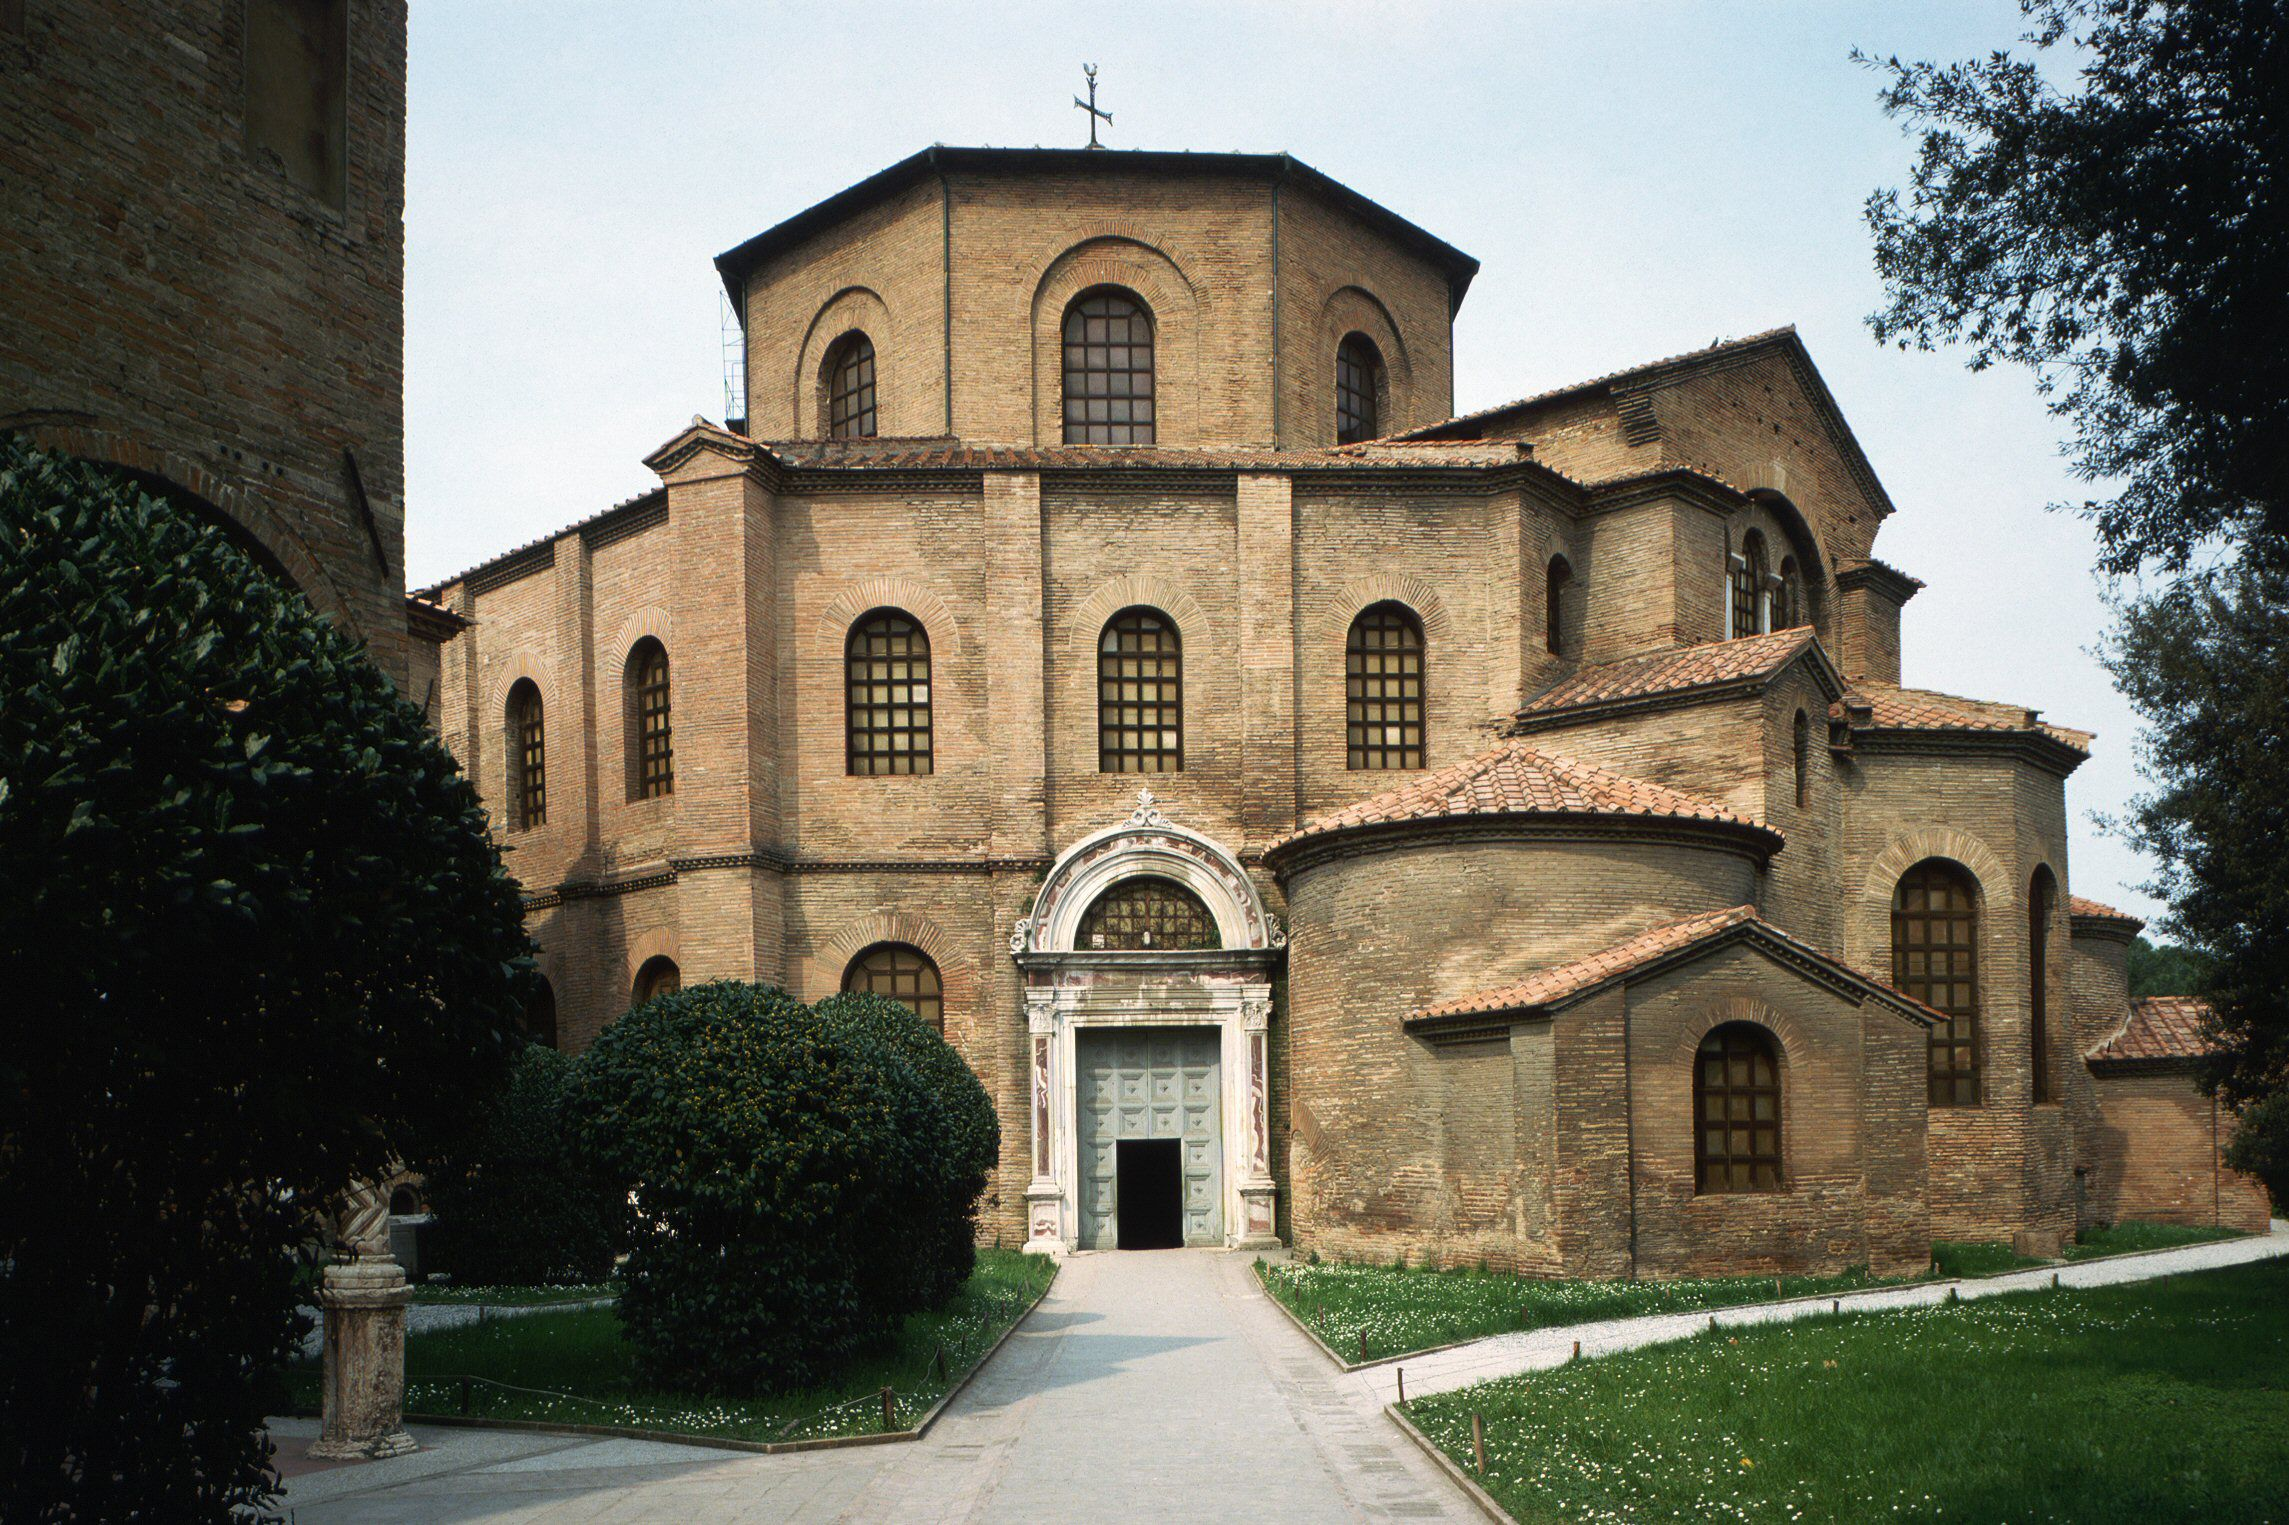 About Byzantine Architecture And The Rise Of Christianity